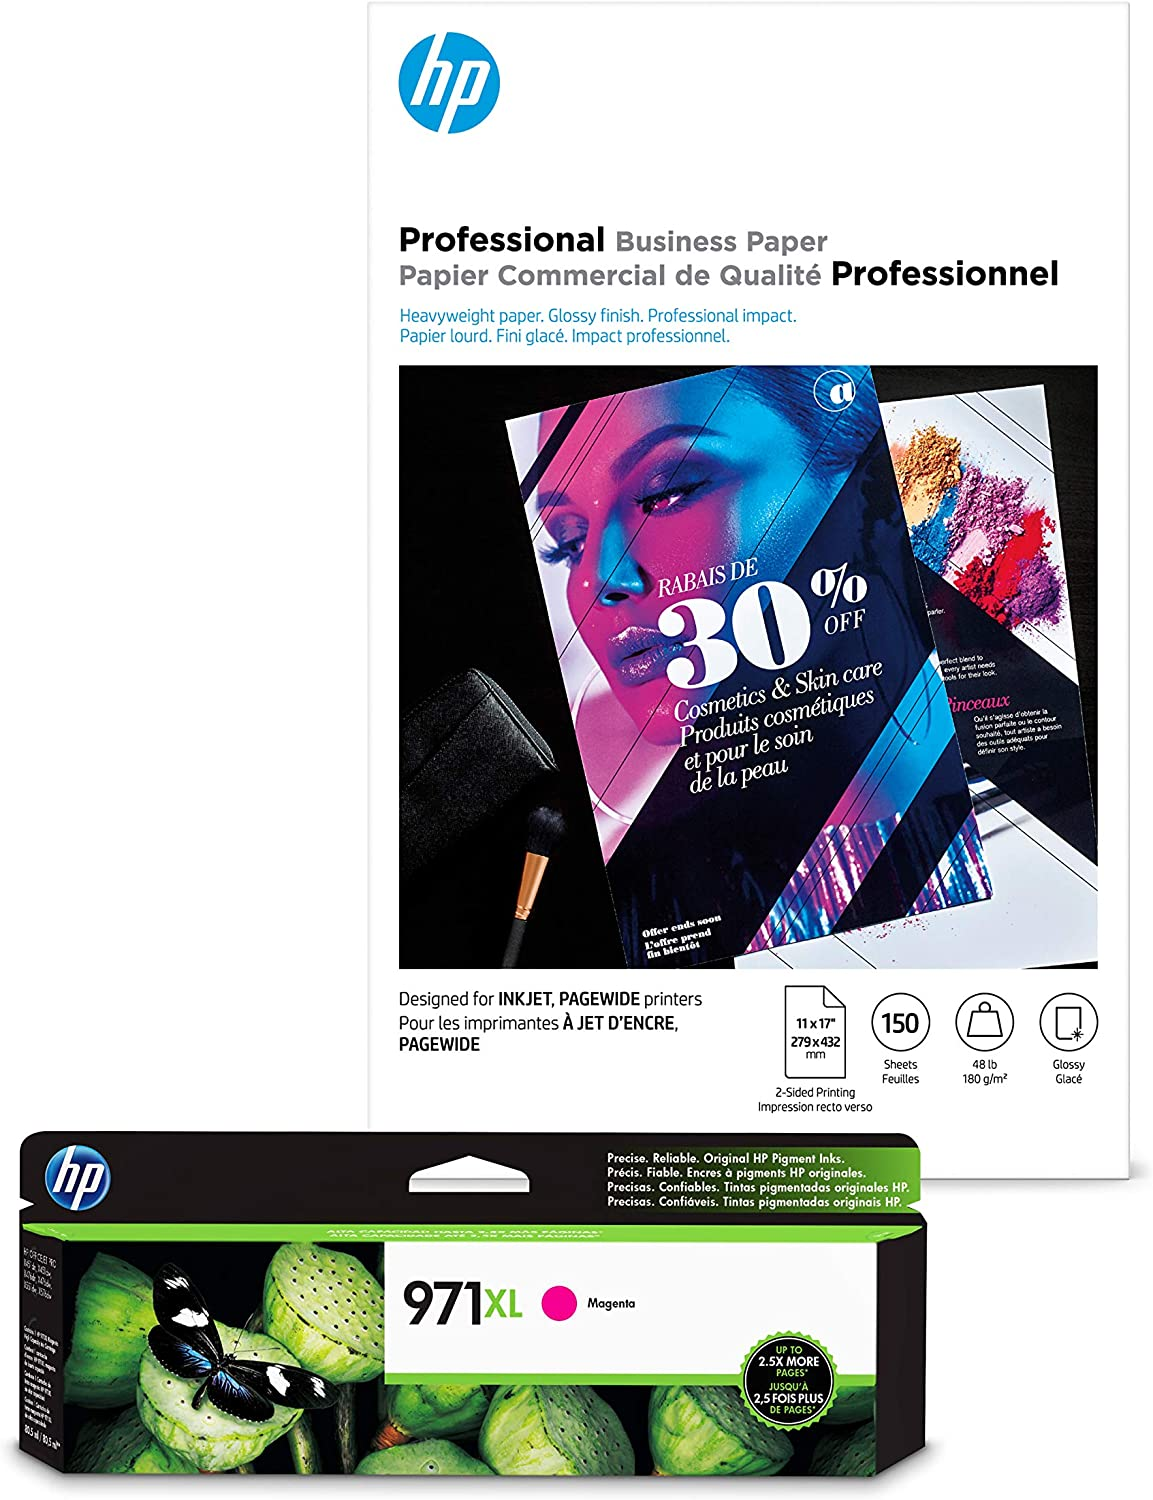 HP 970XL Magenta Ink + HP Professional Business Paper, Glossy, Inkjet, 11x17, 150 sheets